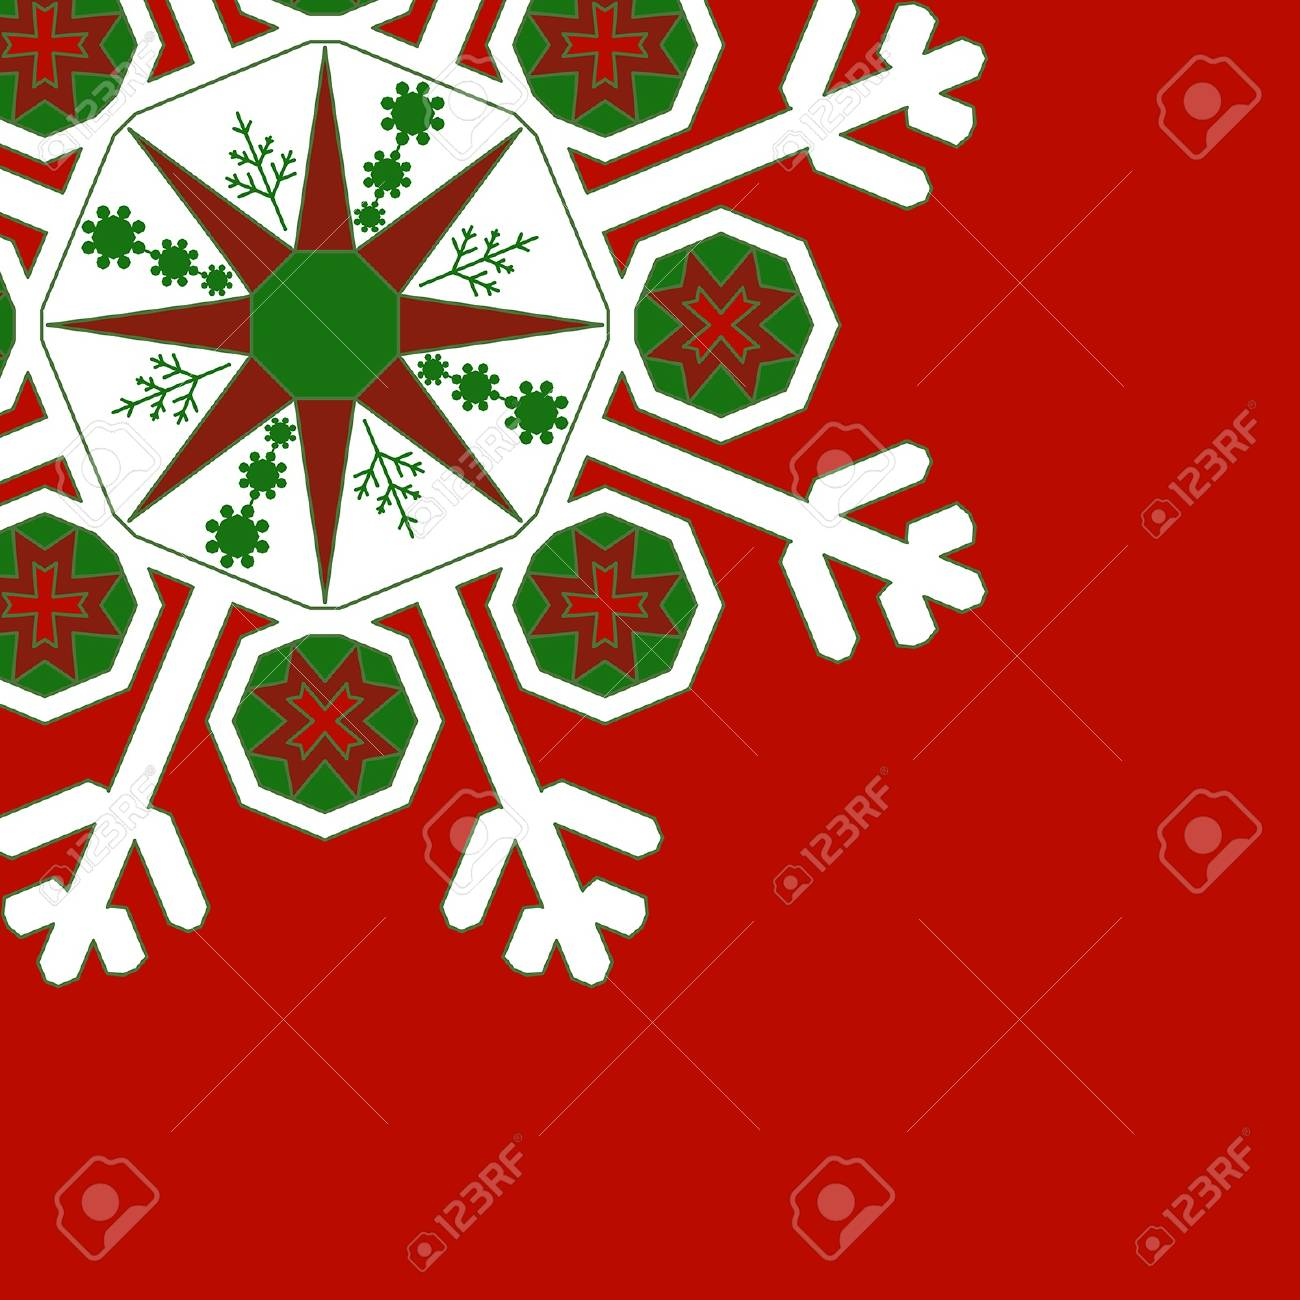 Decorative graphic snowflake on a red background. With space for text or image. vector Stock Vector - 16762285